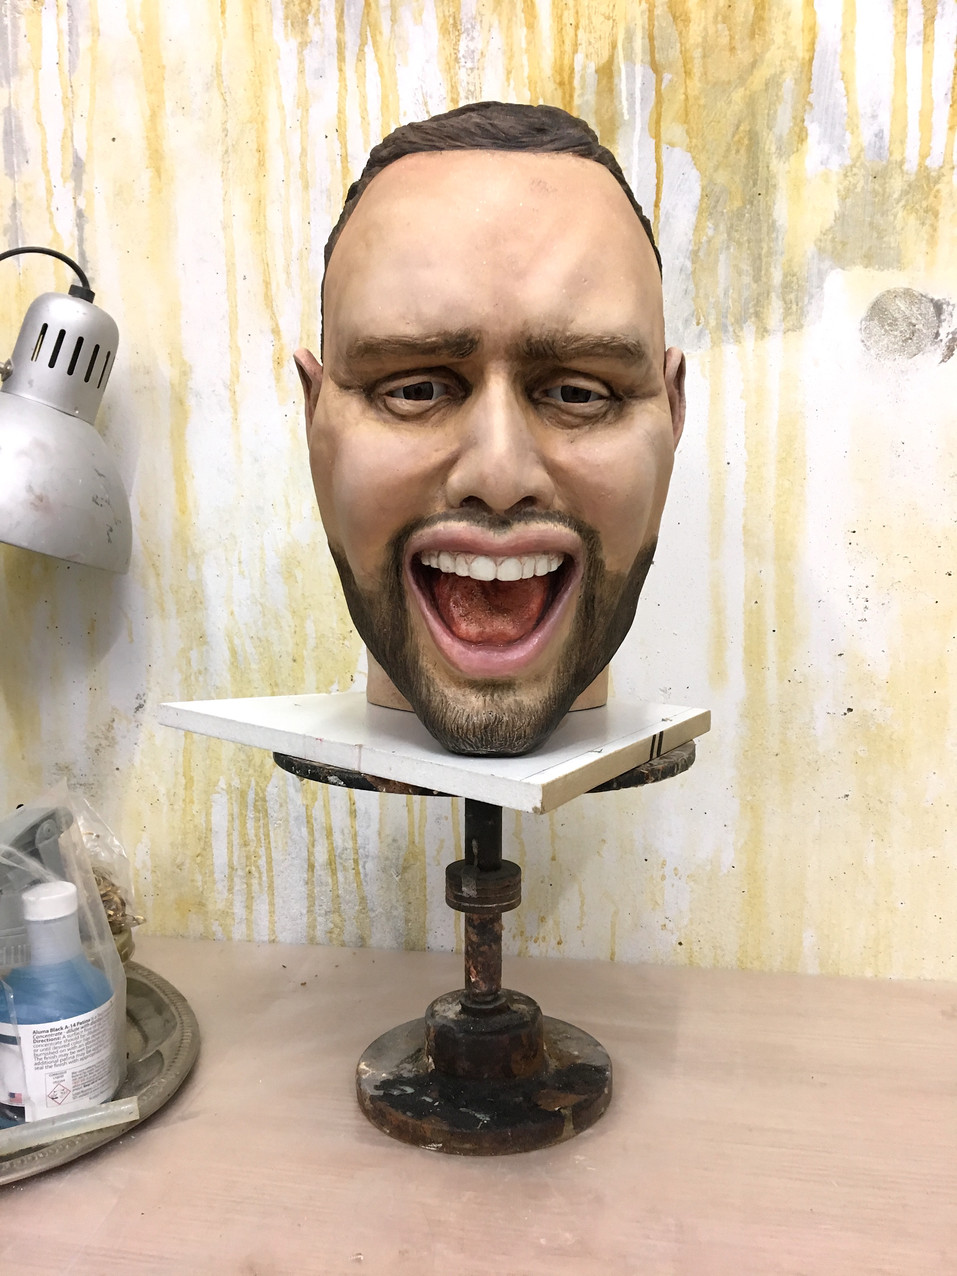 Scooter Braun - look-a-like head sculpt.- Entertainment Executive